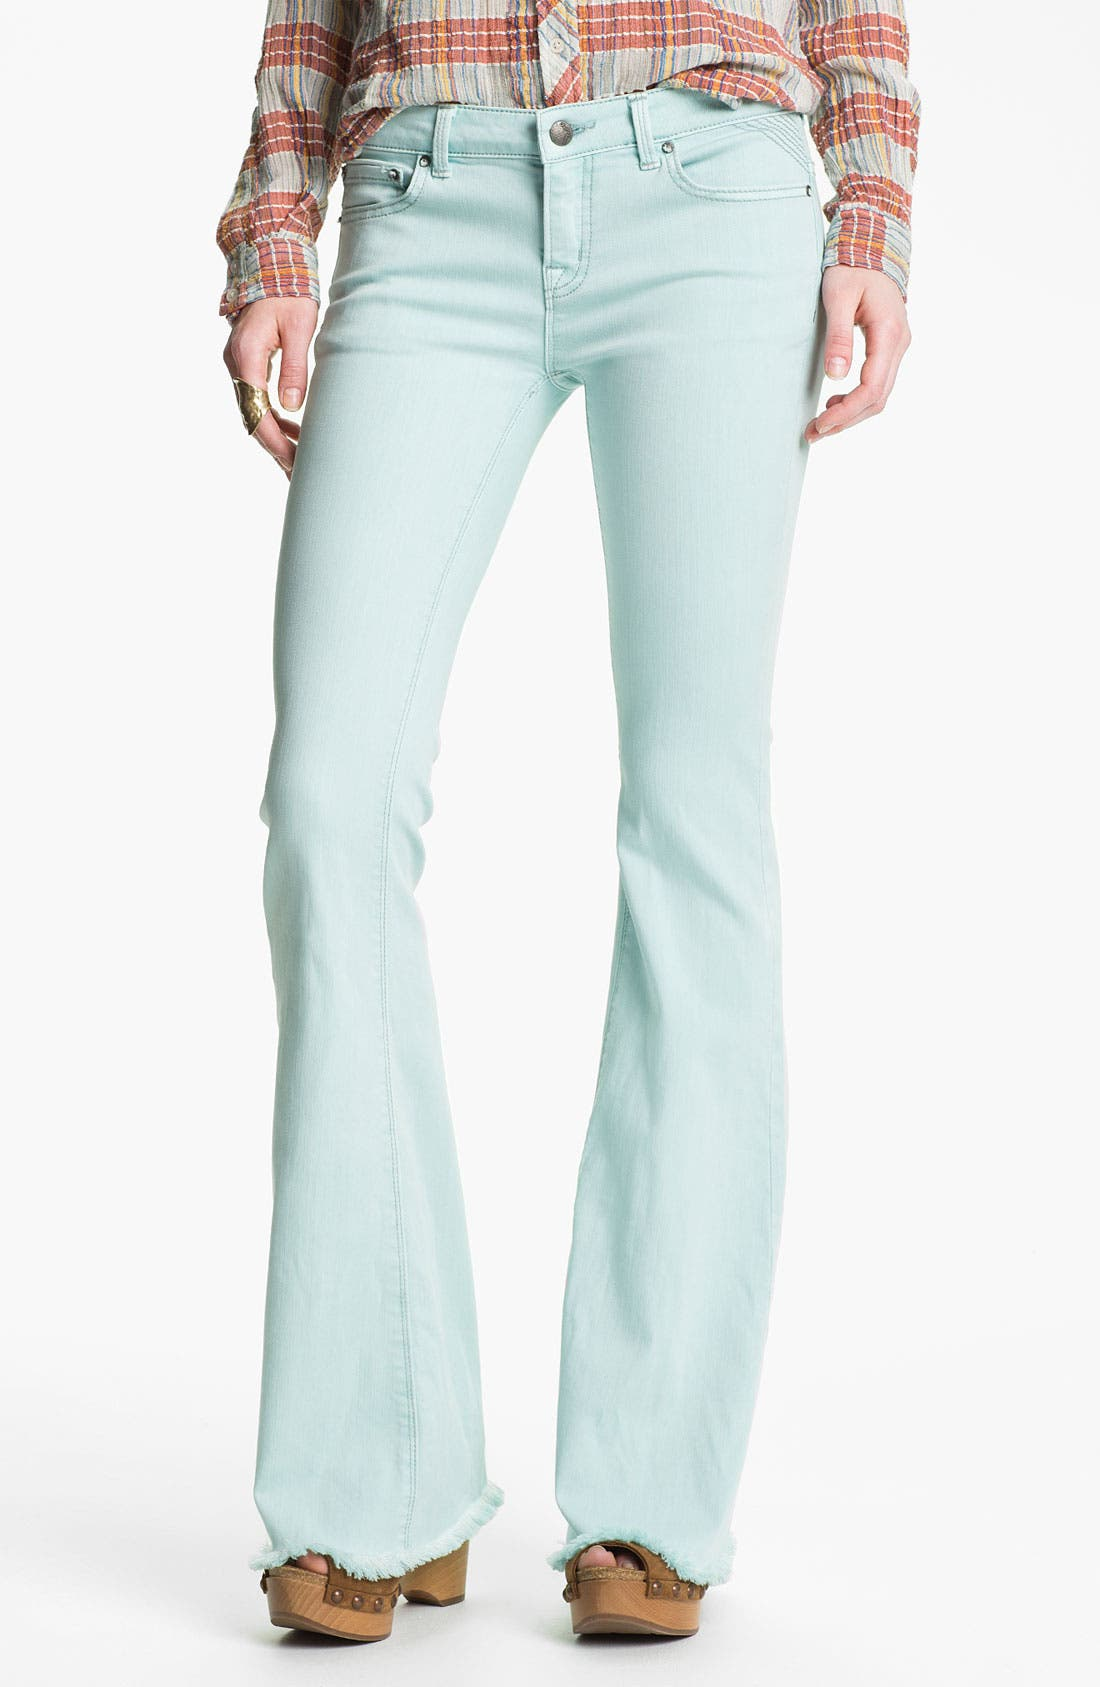 Alternate Image 1 Selected - Free People 'Millennium' Colored Denim Bootcut Jeans (Pale Blue)